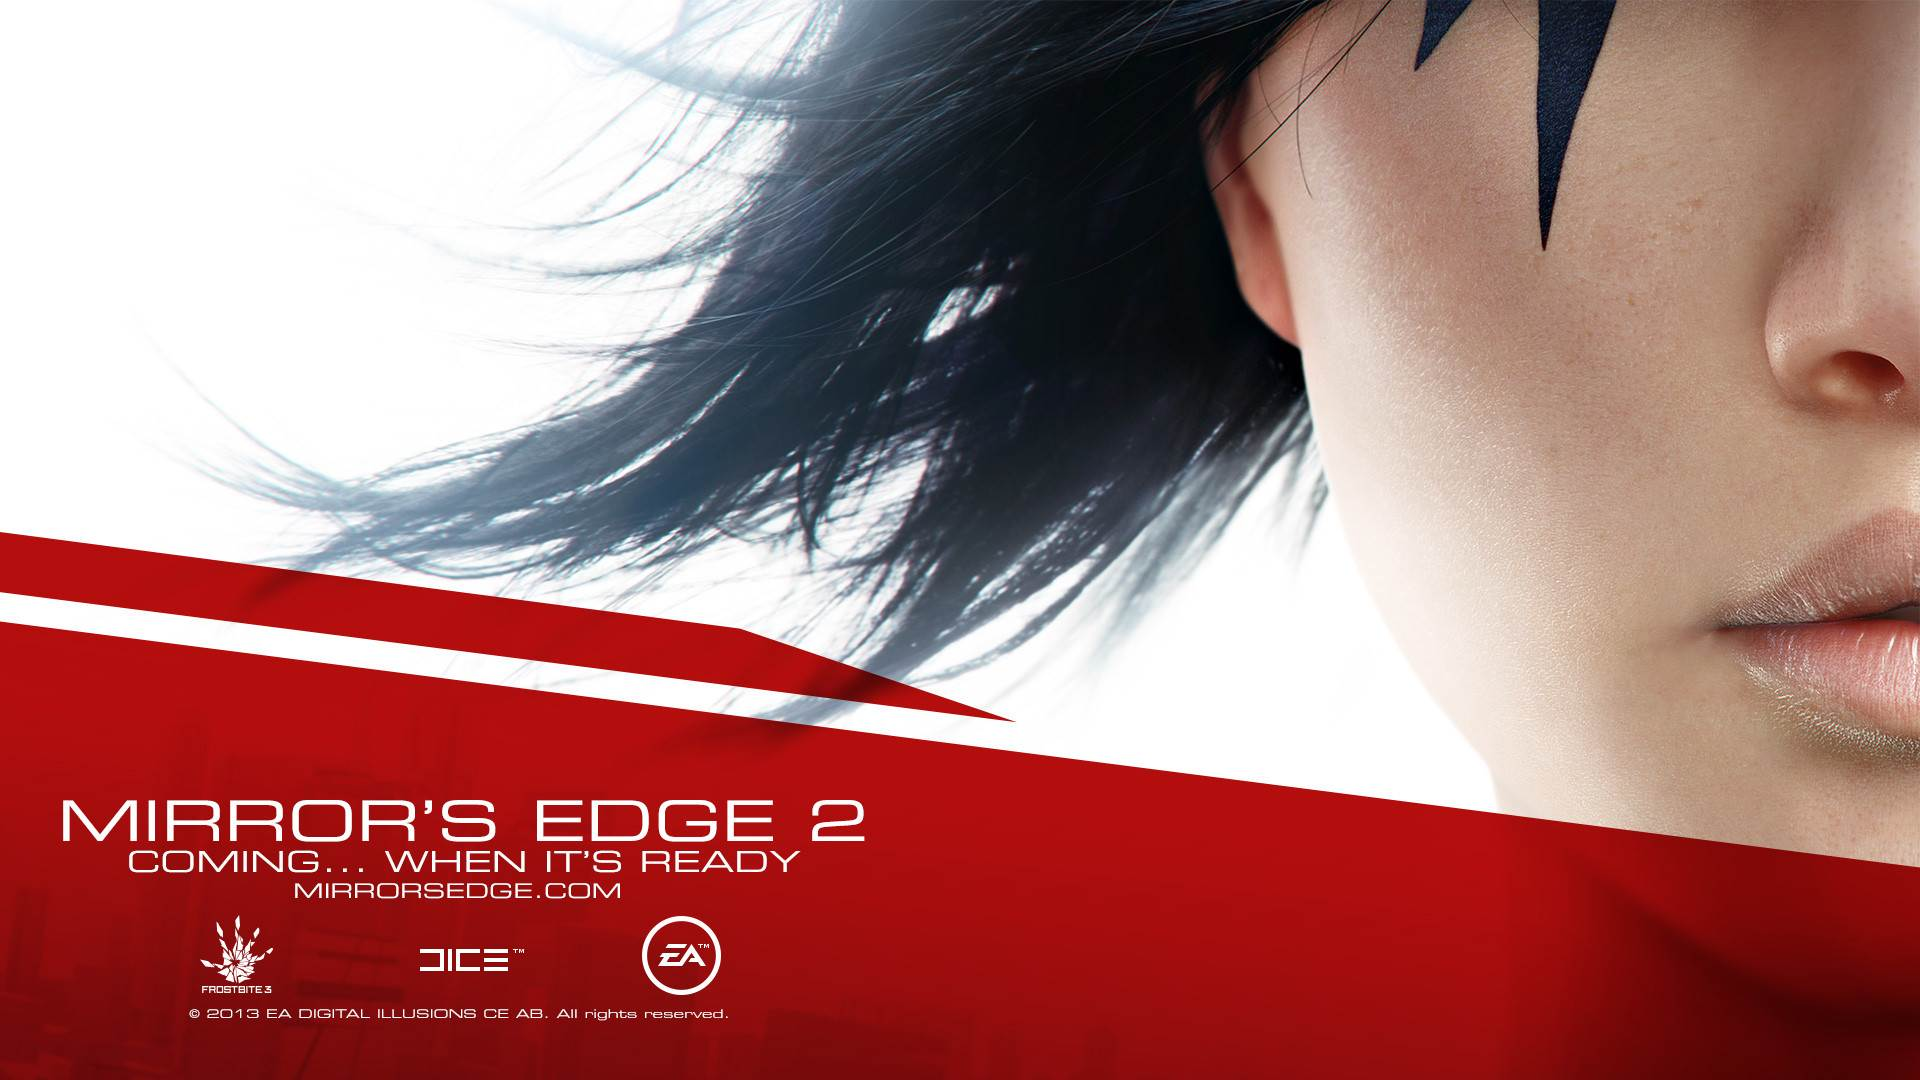 mirrors edge 2 wallpaper GamingBoltcom Video Game News Reviews 1920x1080